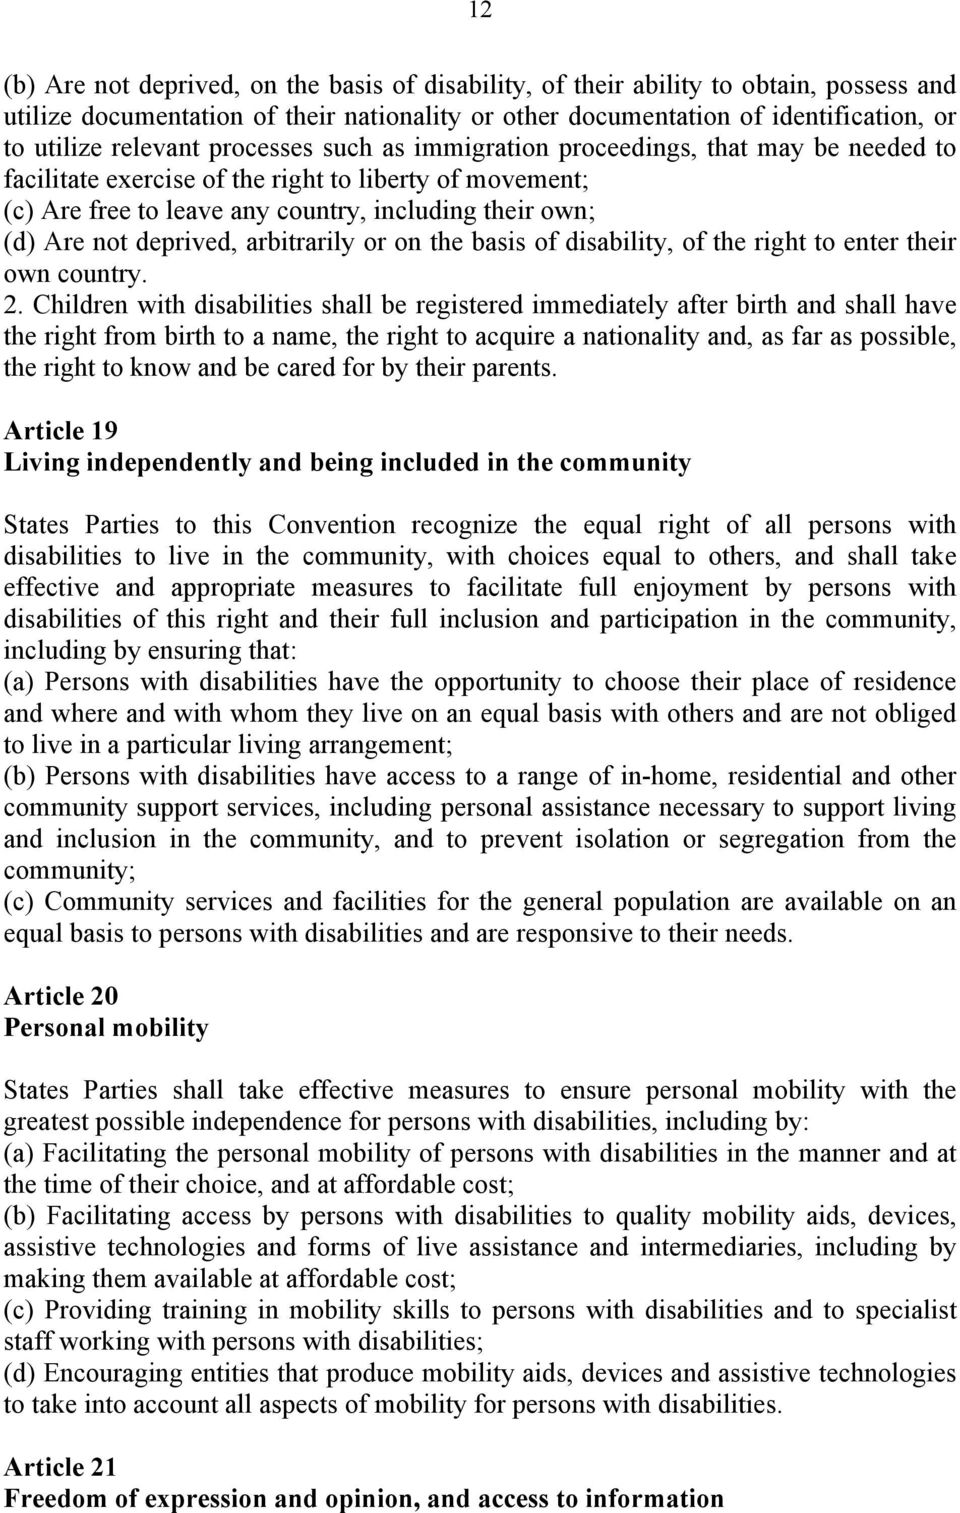 deprived, arbitrarily or on the basis of disability, of the right to enter their own country. 2.